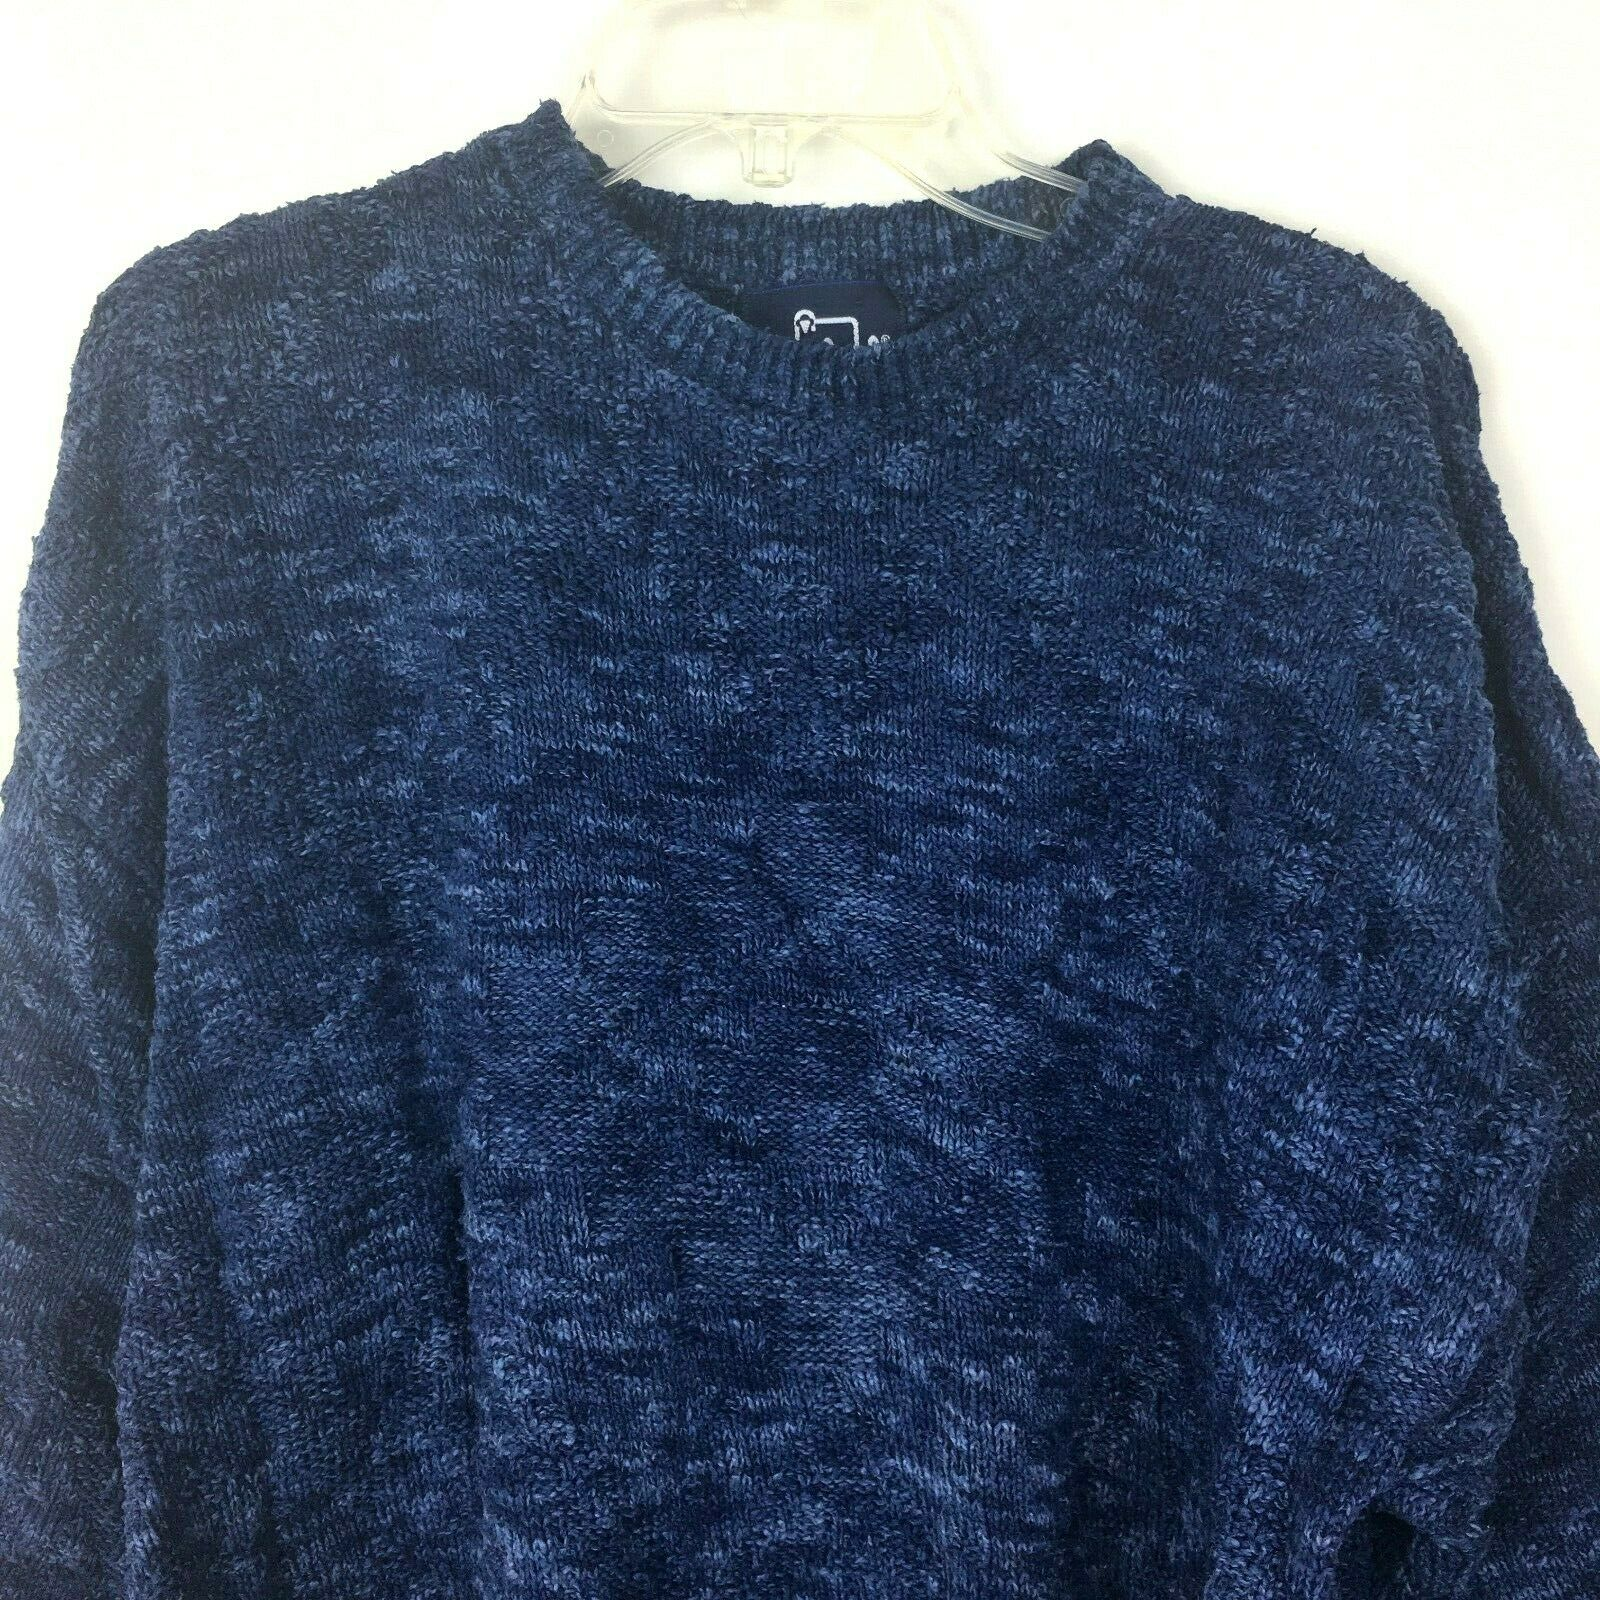 Woolrich Sweater Men's XL Vintage 80s 100% Cotton Denim bluee Diamond Knit USA